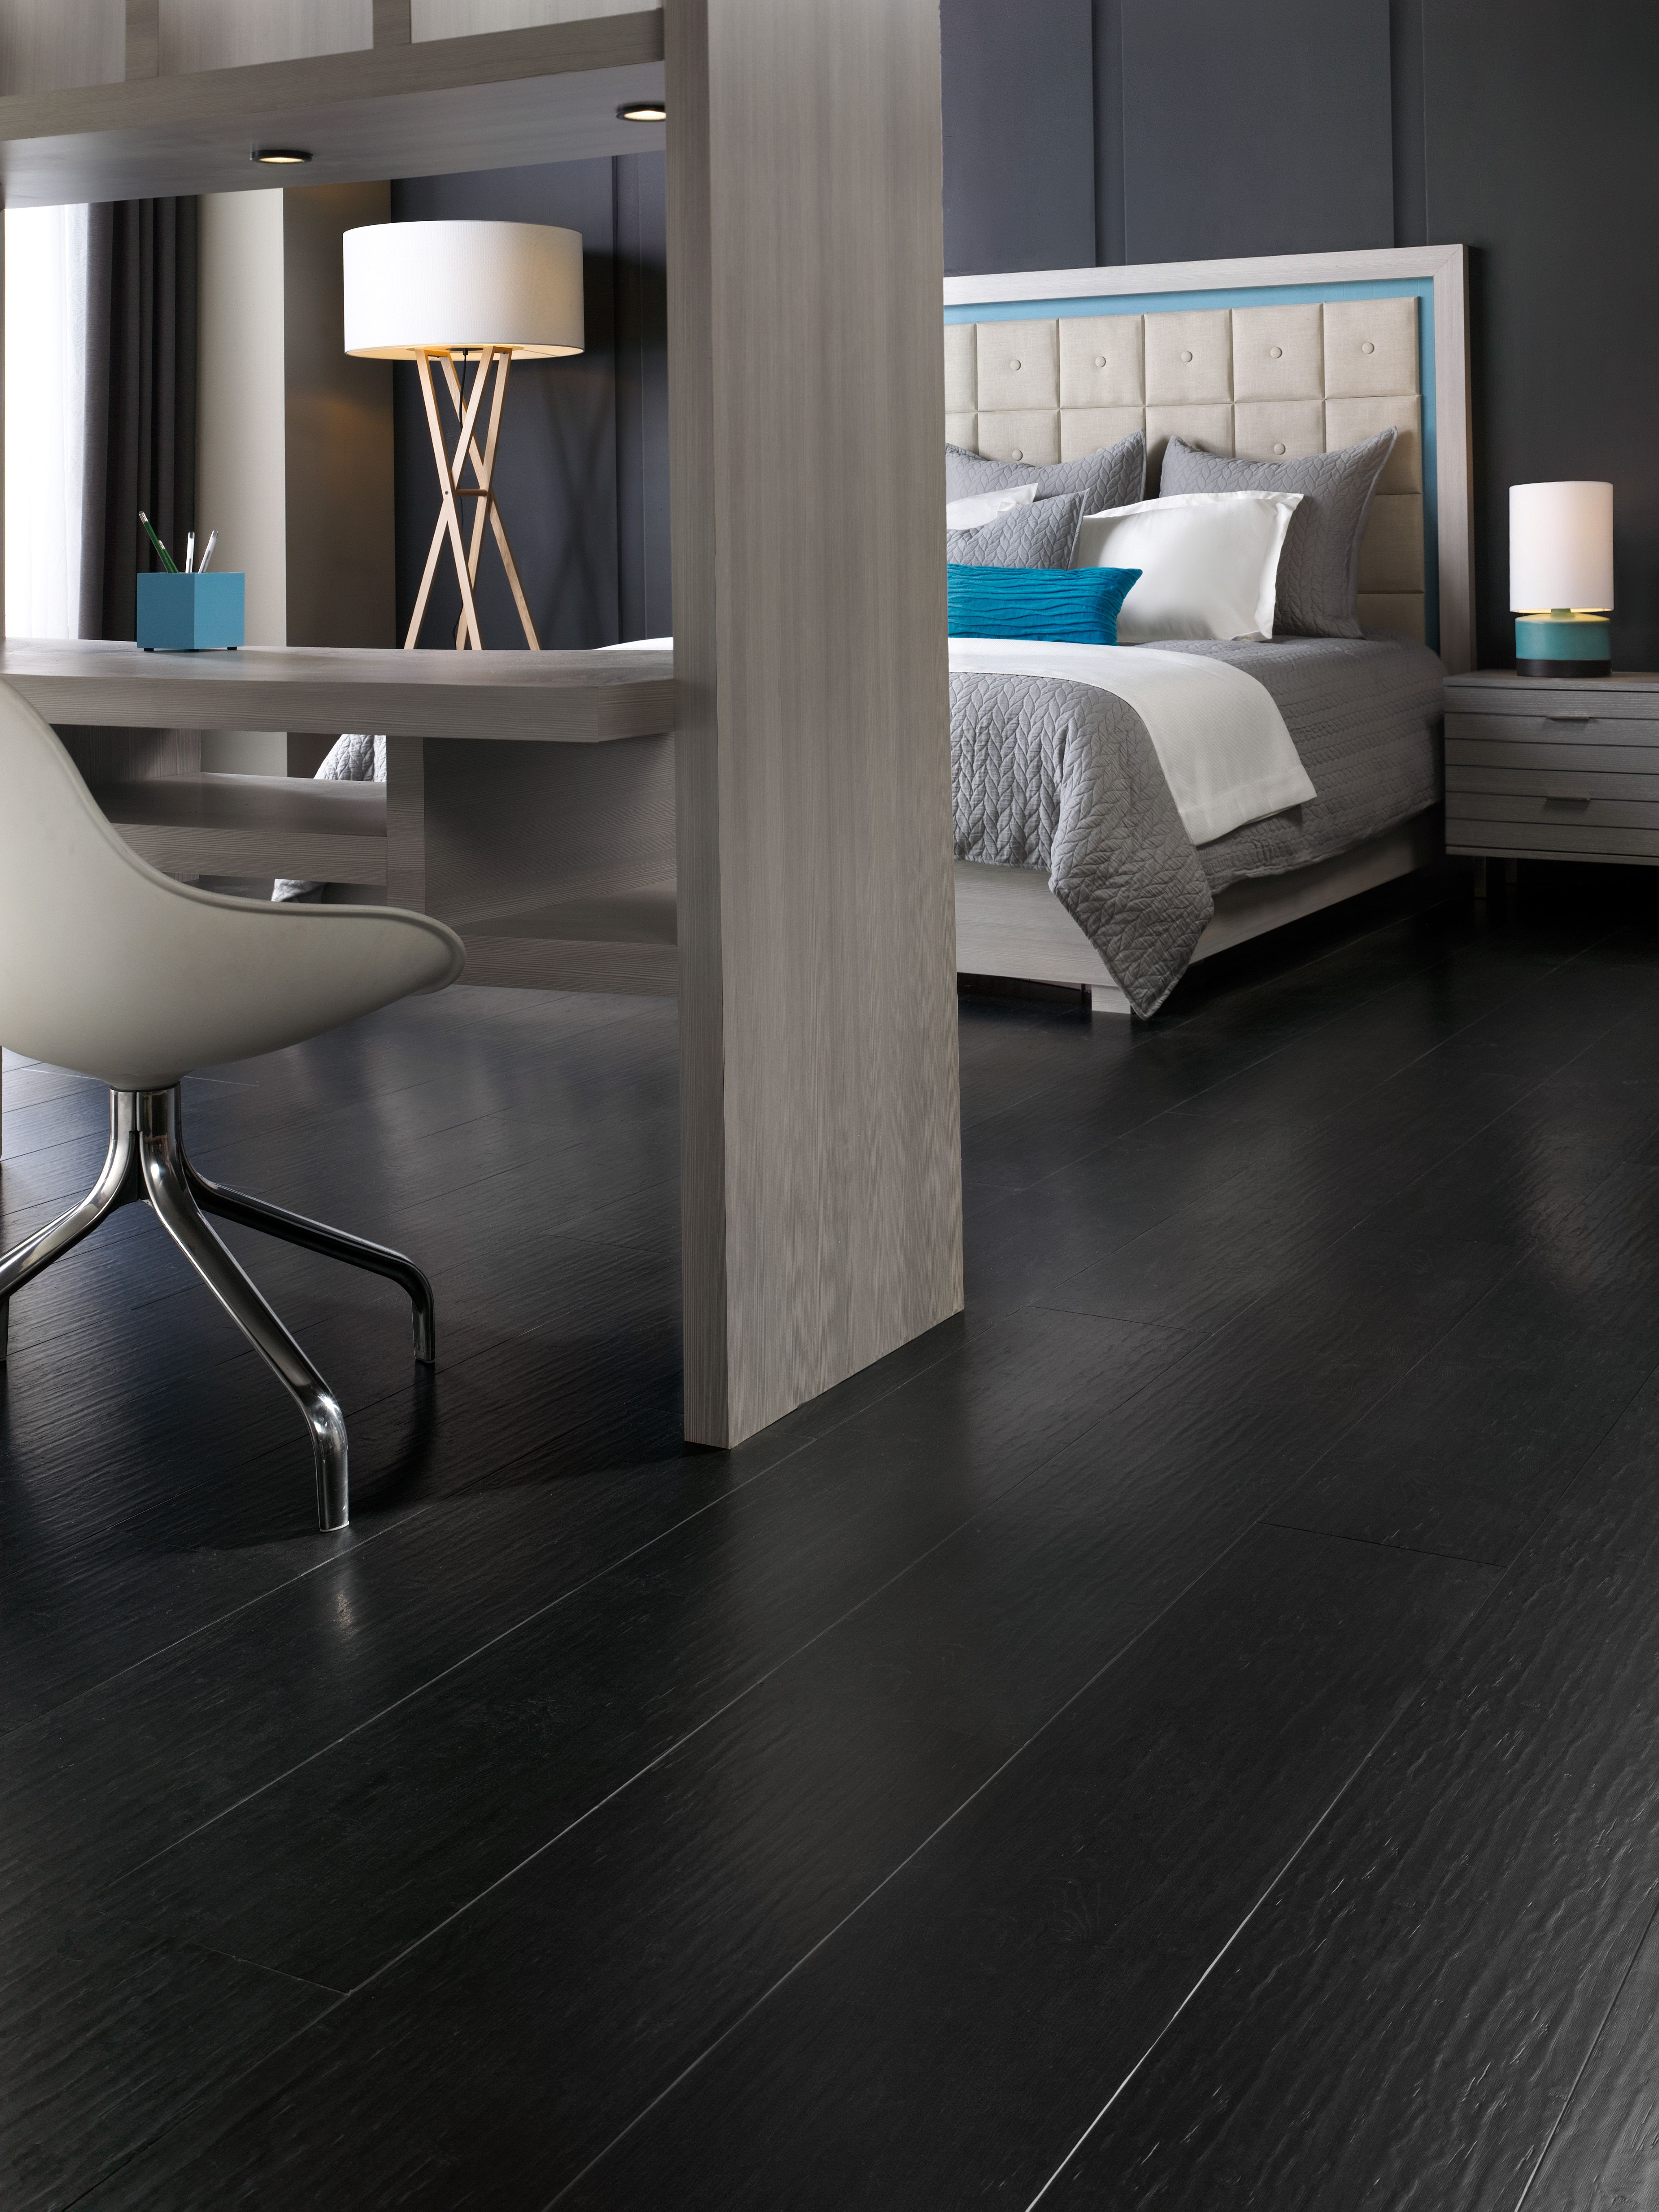 1000+ images about Flooring on Pinterest - ^